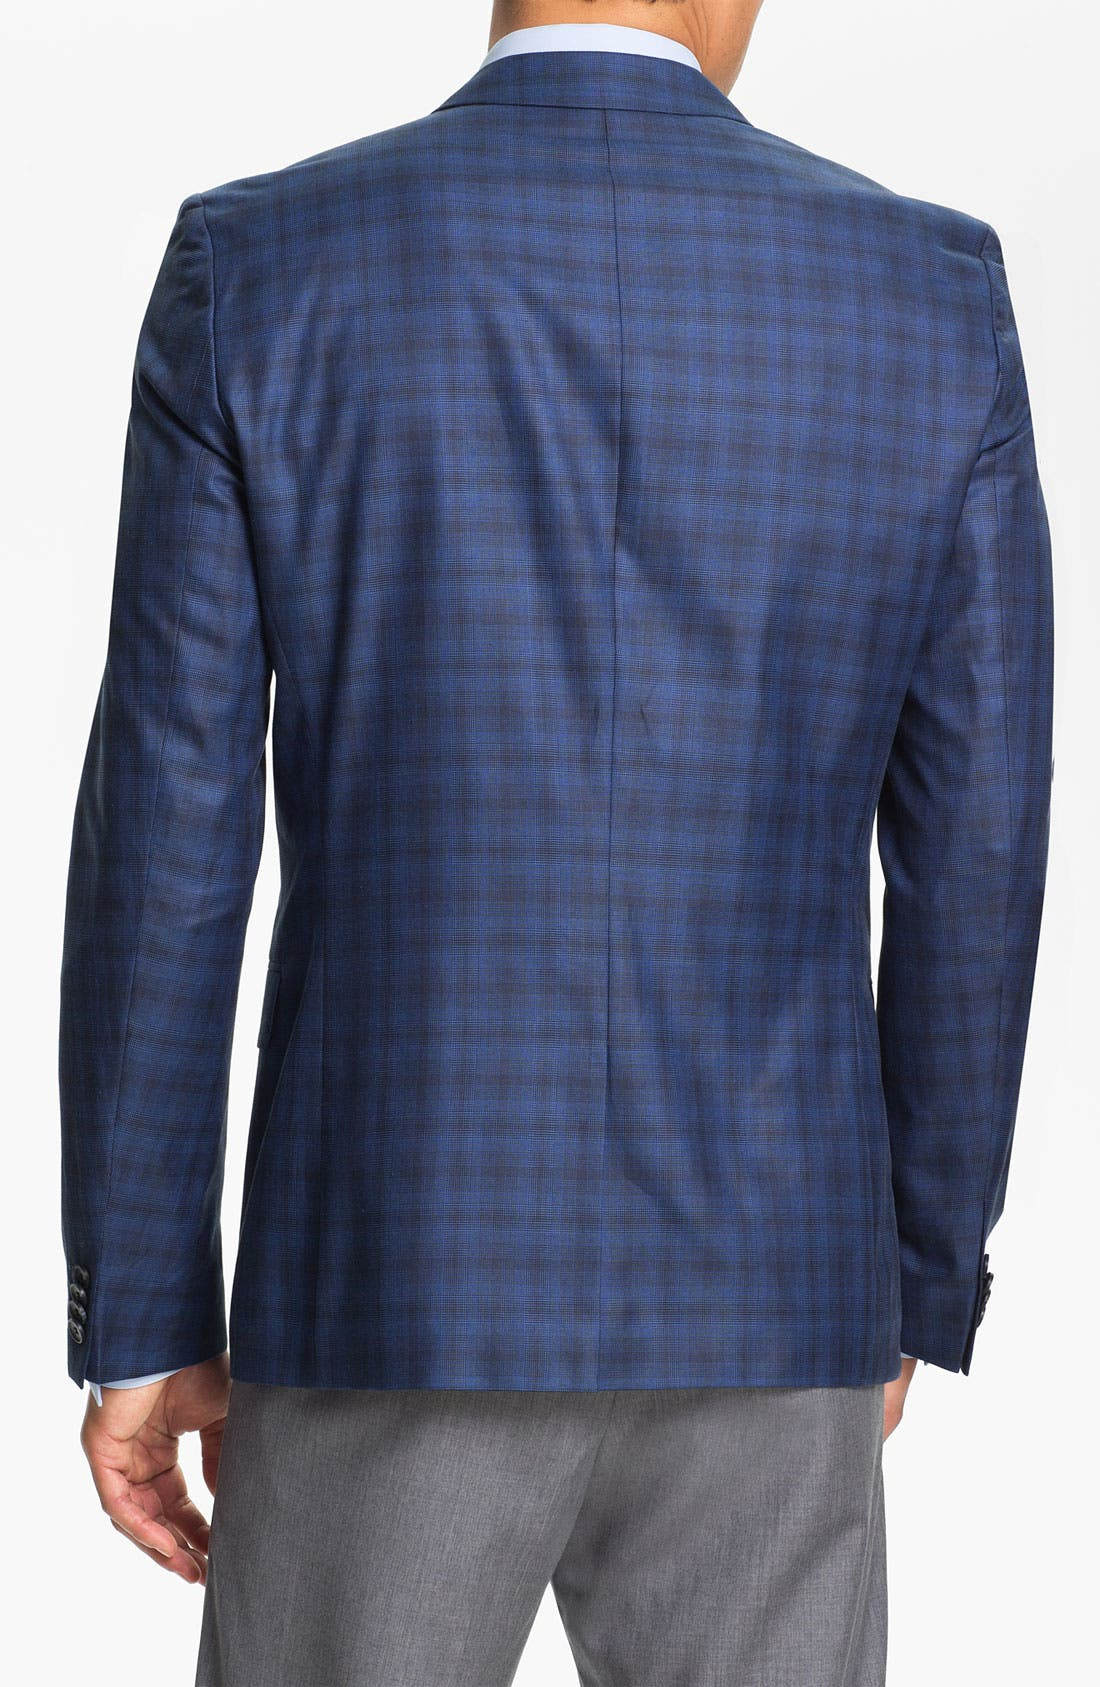 Alternate Image 2  - HUGO 'Amares' Trim Fit Plaid Sportcoat